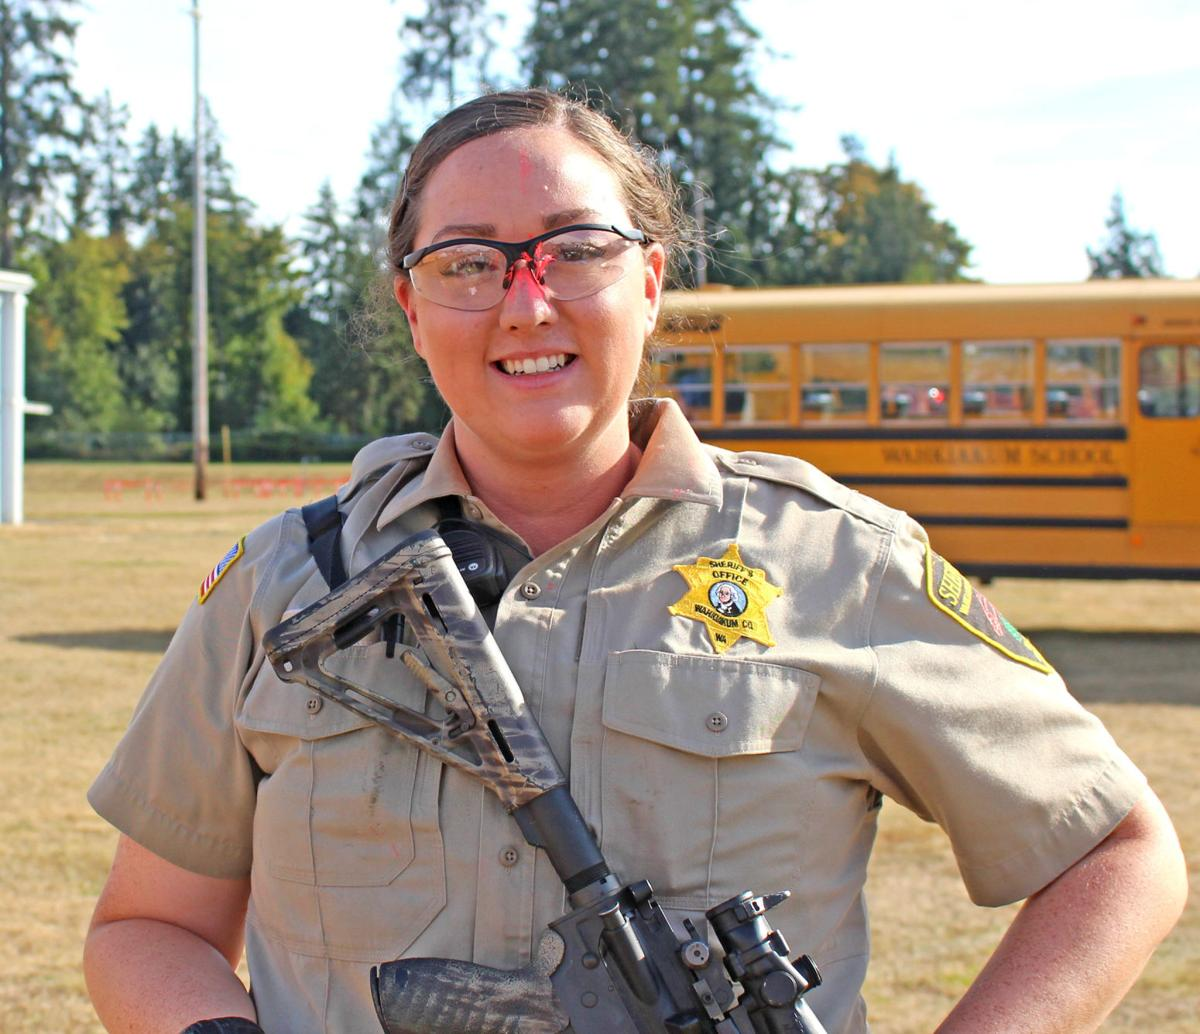 Wahkiakum High School hosts intense 'active shooter exercise